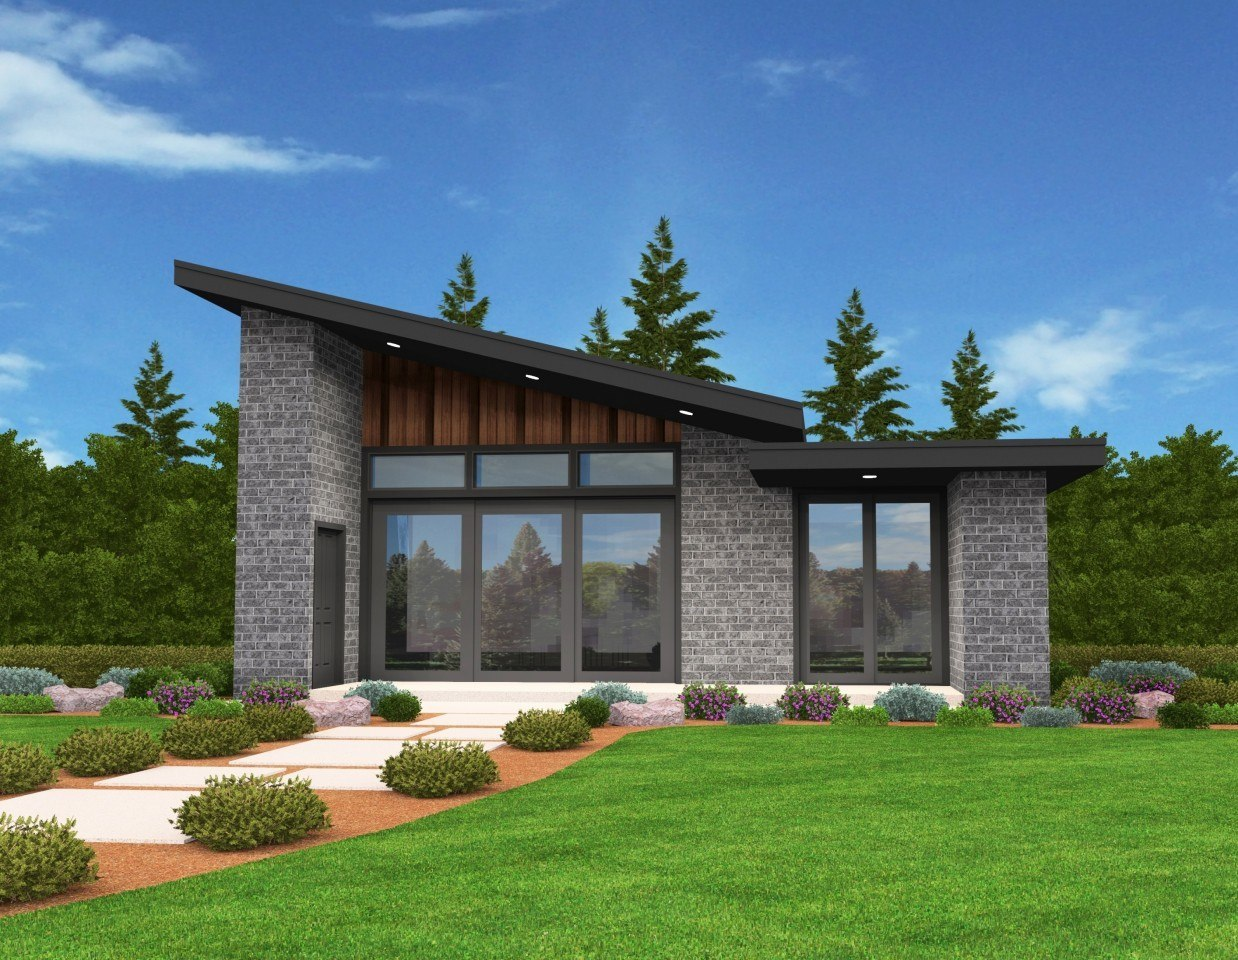 Mercury Modern Shed Roof House Plan | Small Home Designs ...